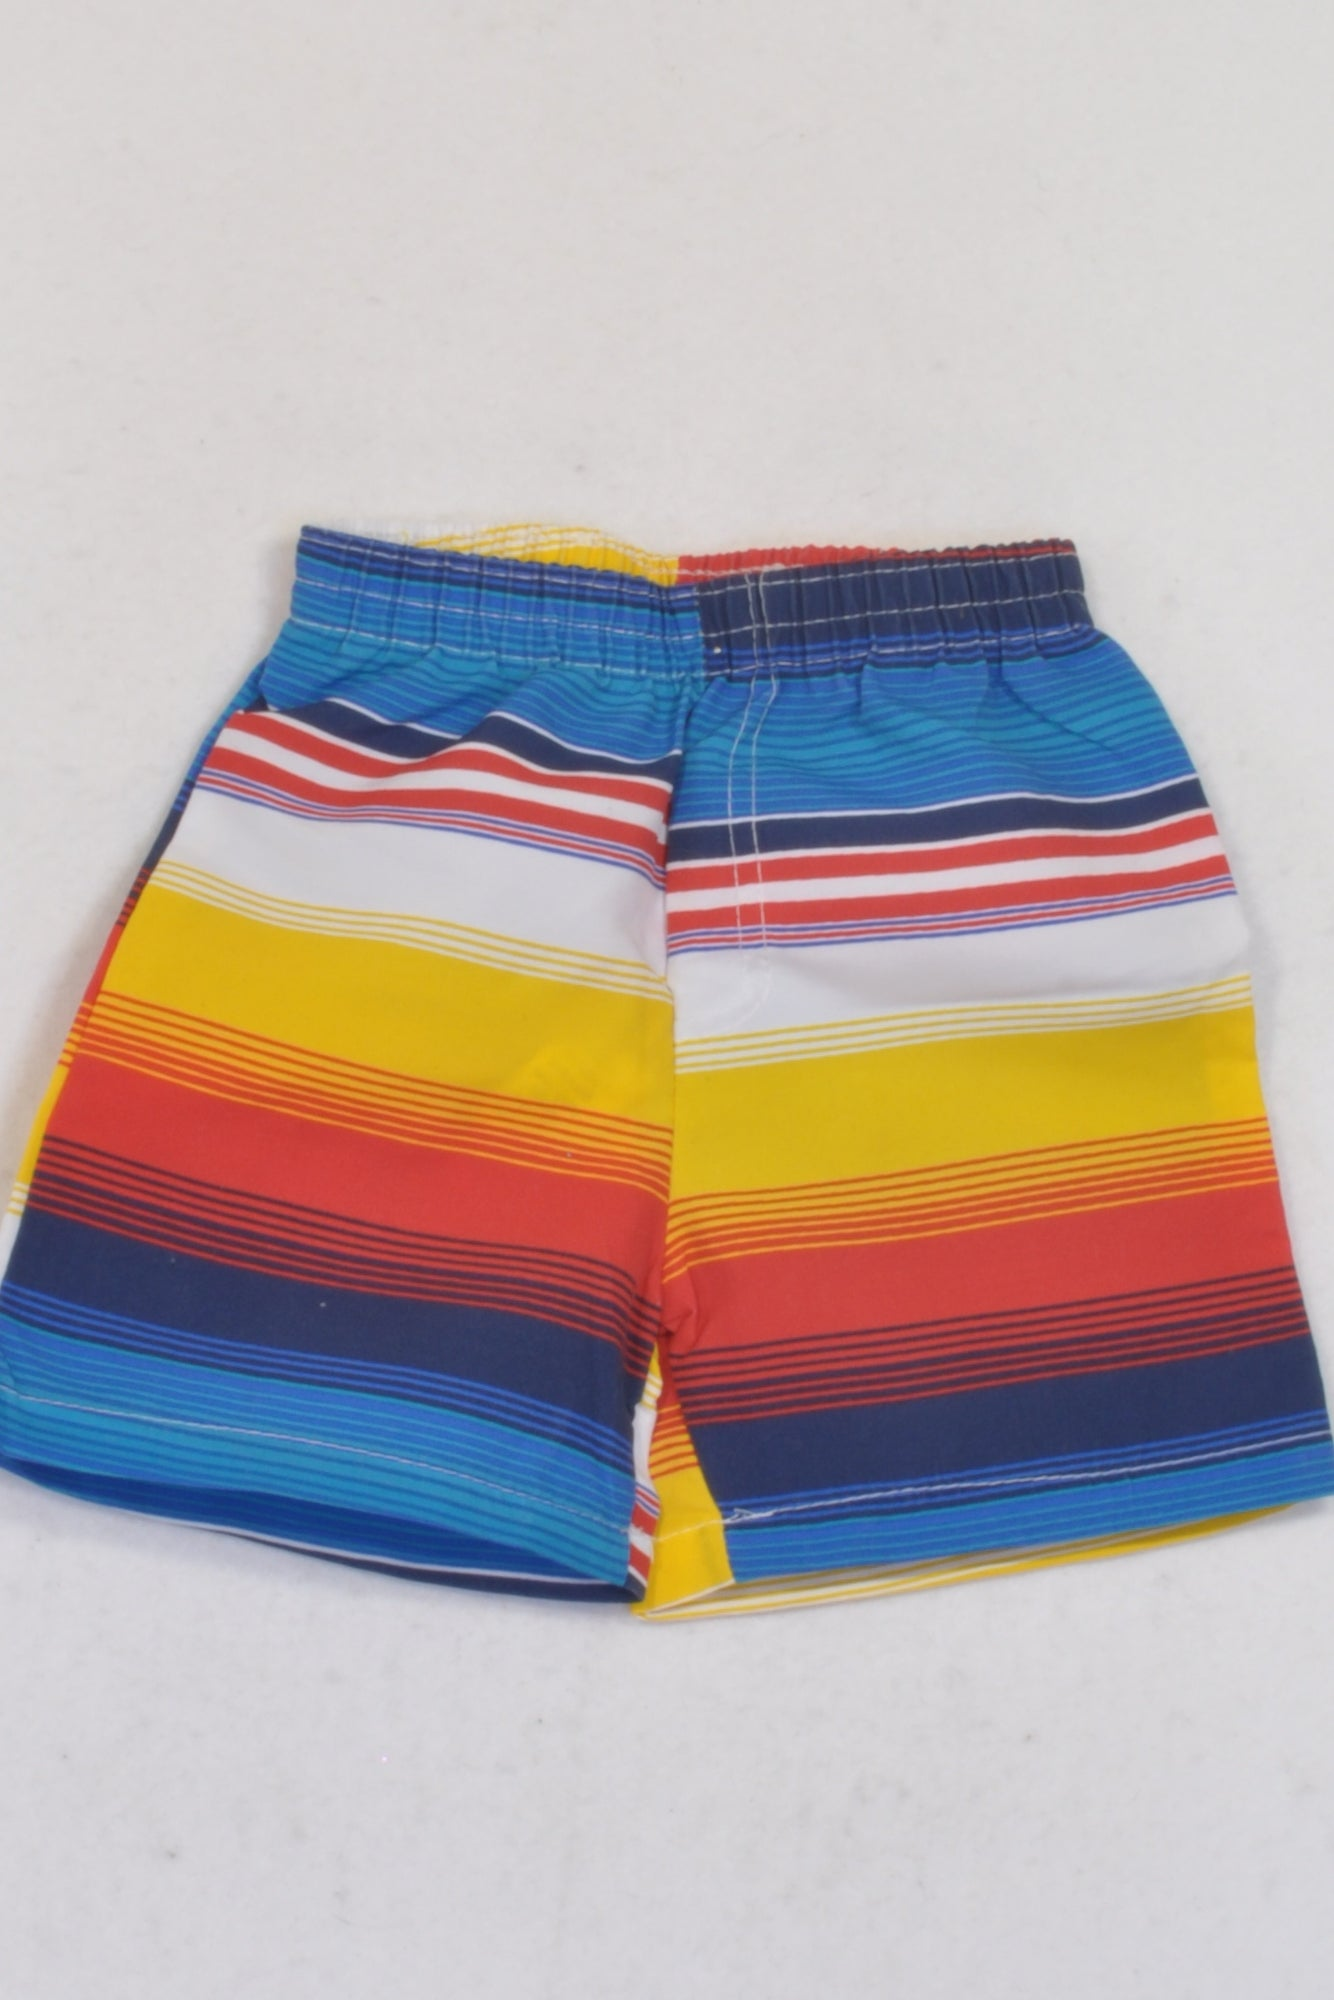 Pep Lightweight Blue & Yellow Stripe Shorts Boys 3-6 months